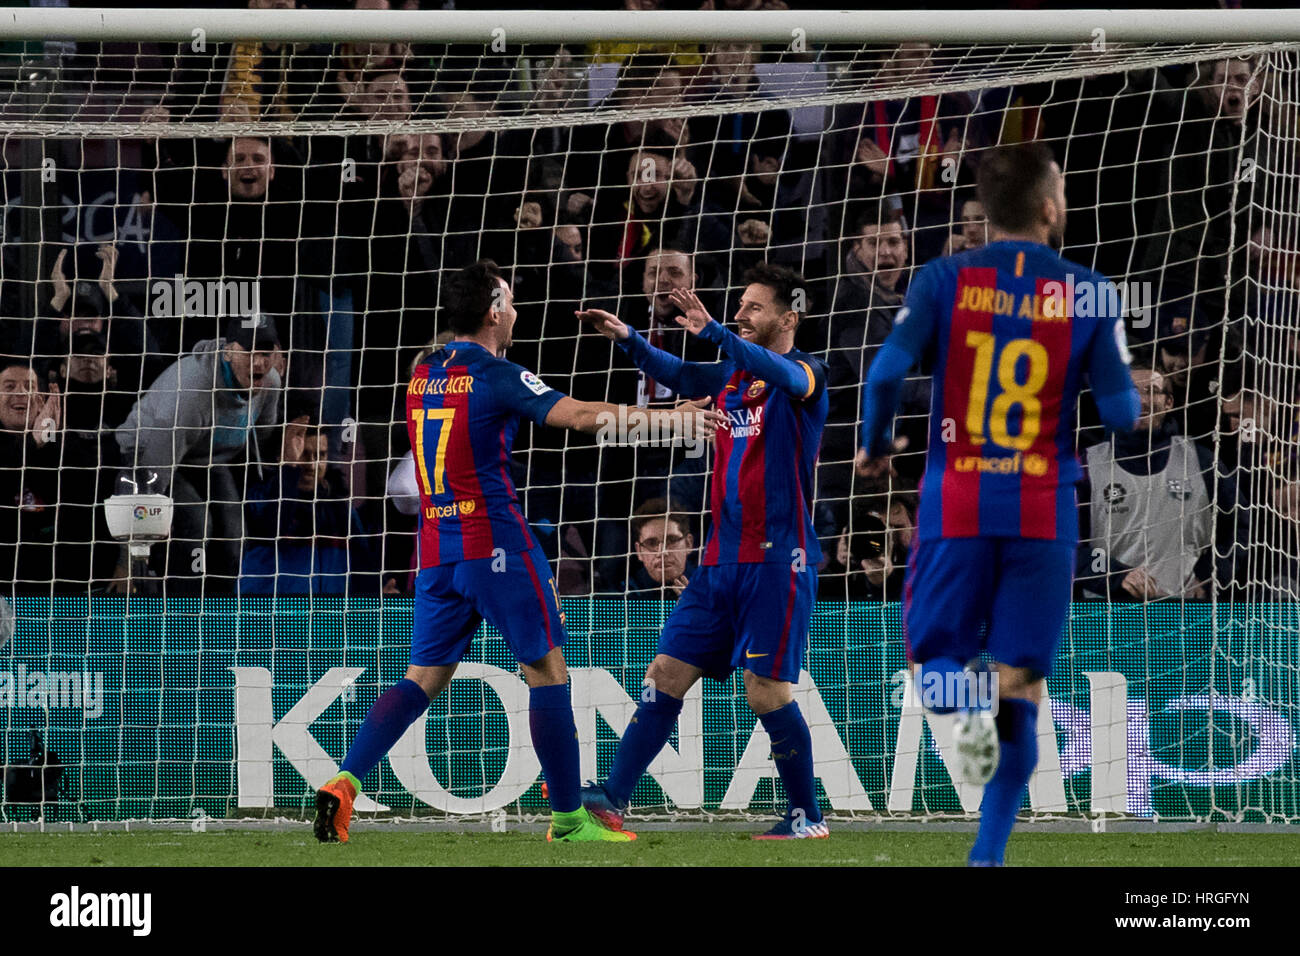 Camp Not Stadium, Barcelona, Spain. 1st March, 2017. Paco Alcocer celebrates his goal with Messi at Camp Nou Stadium, - Stock Image